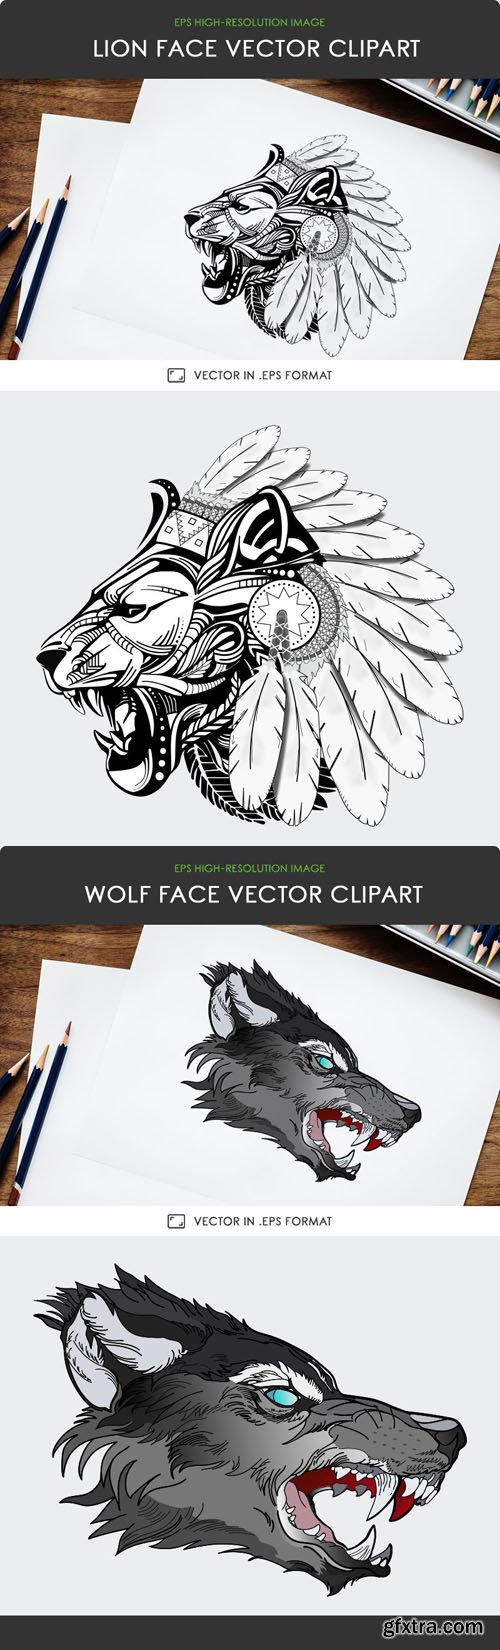 Lion & Wolf Face Vector Clipart